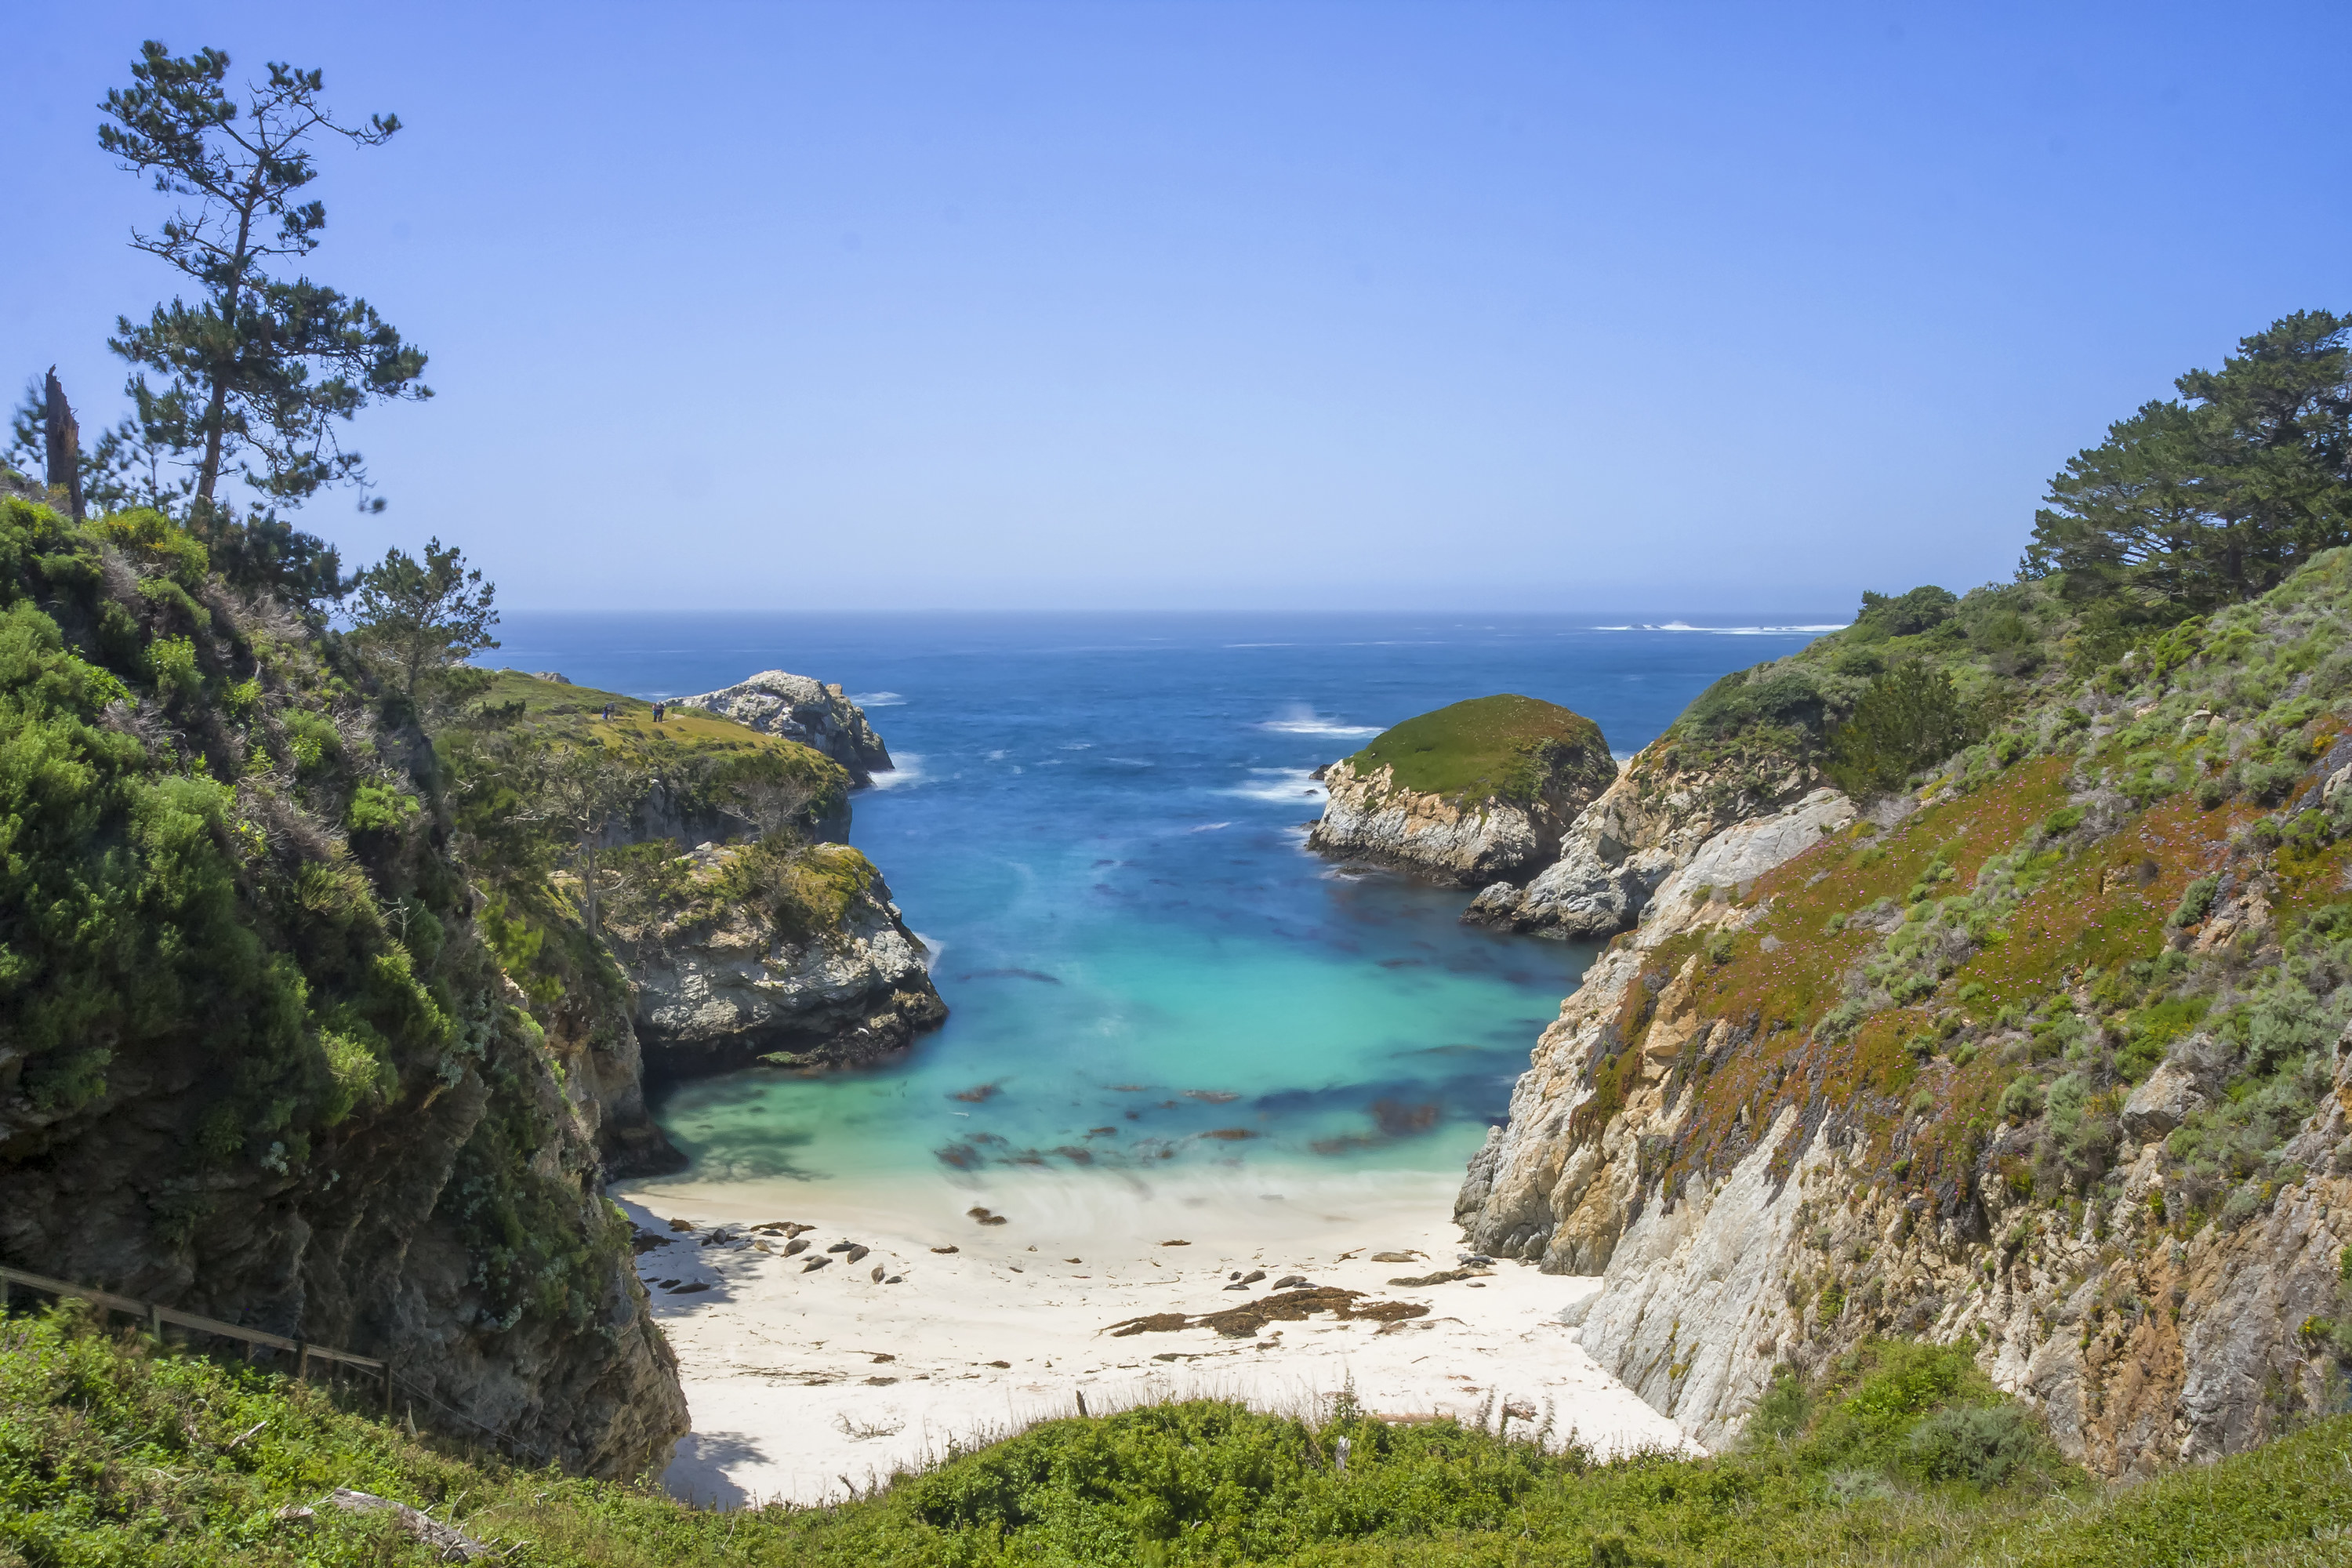 China Cove in Carmel-by-the-Sea